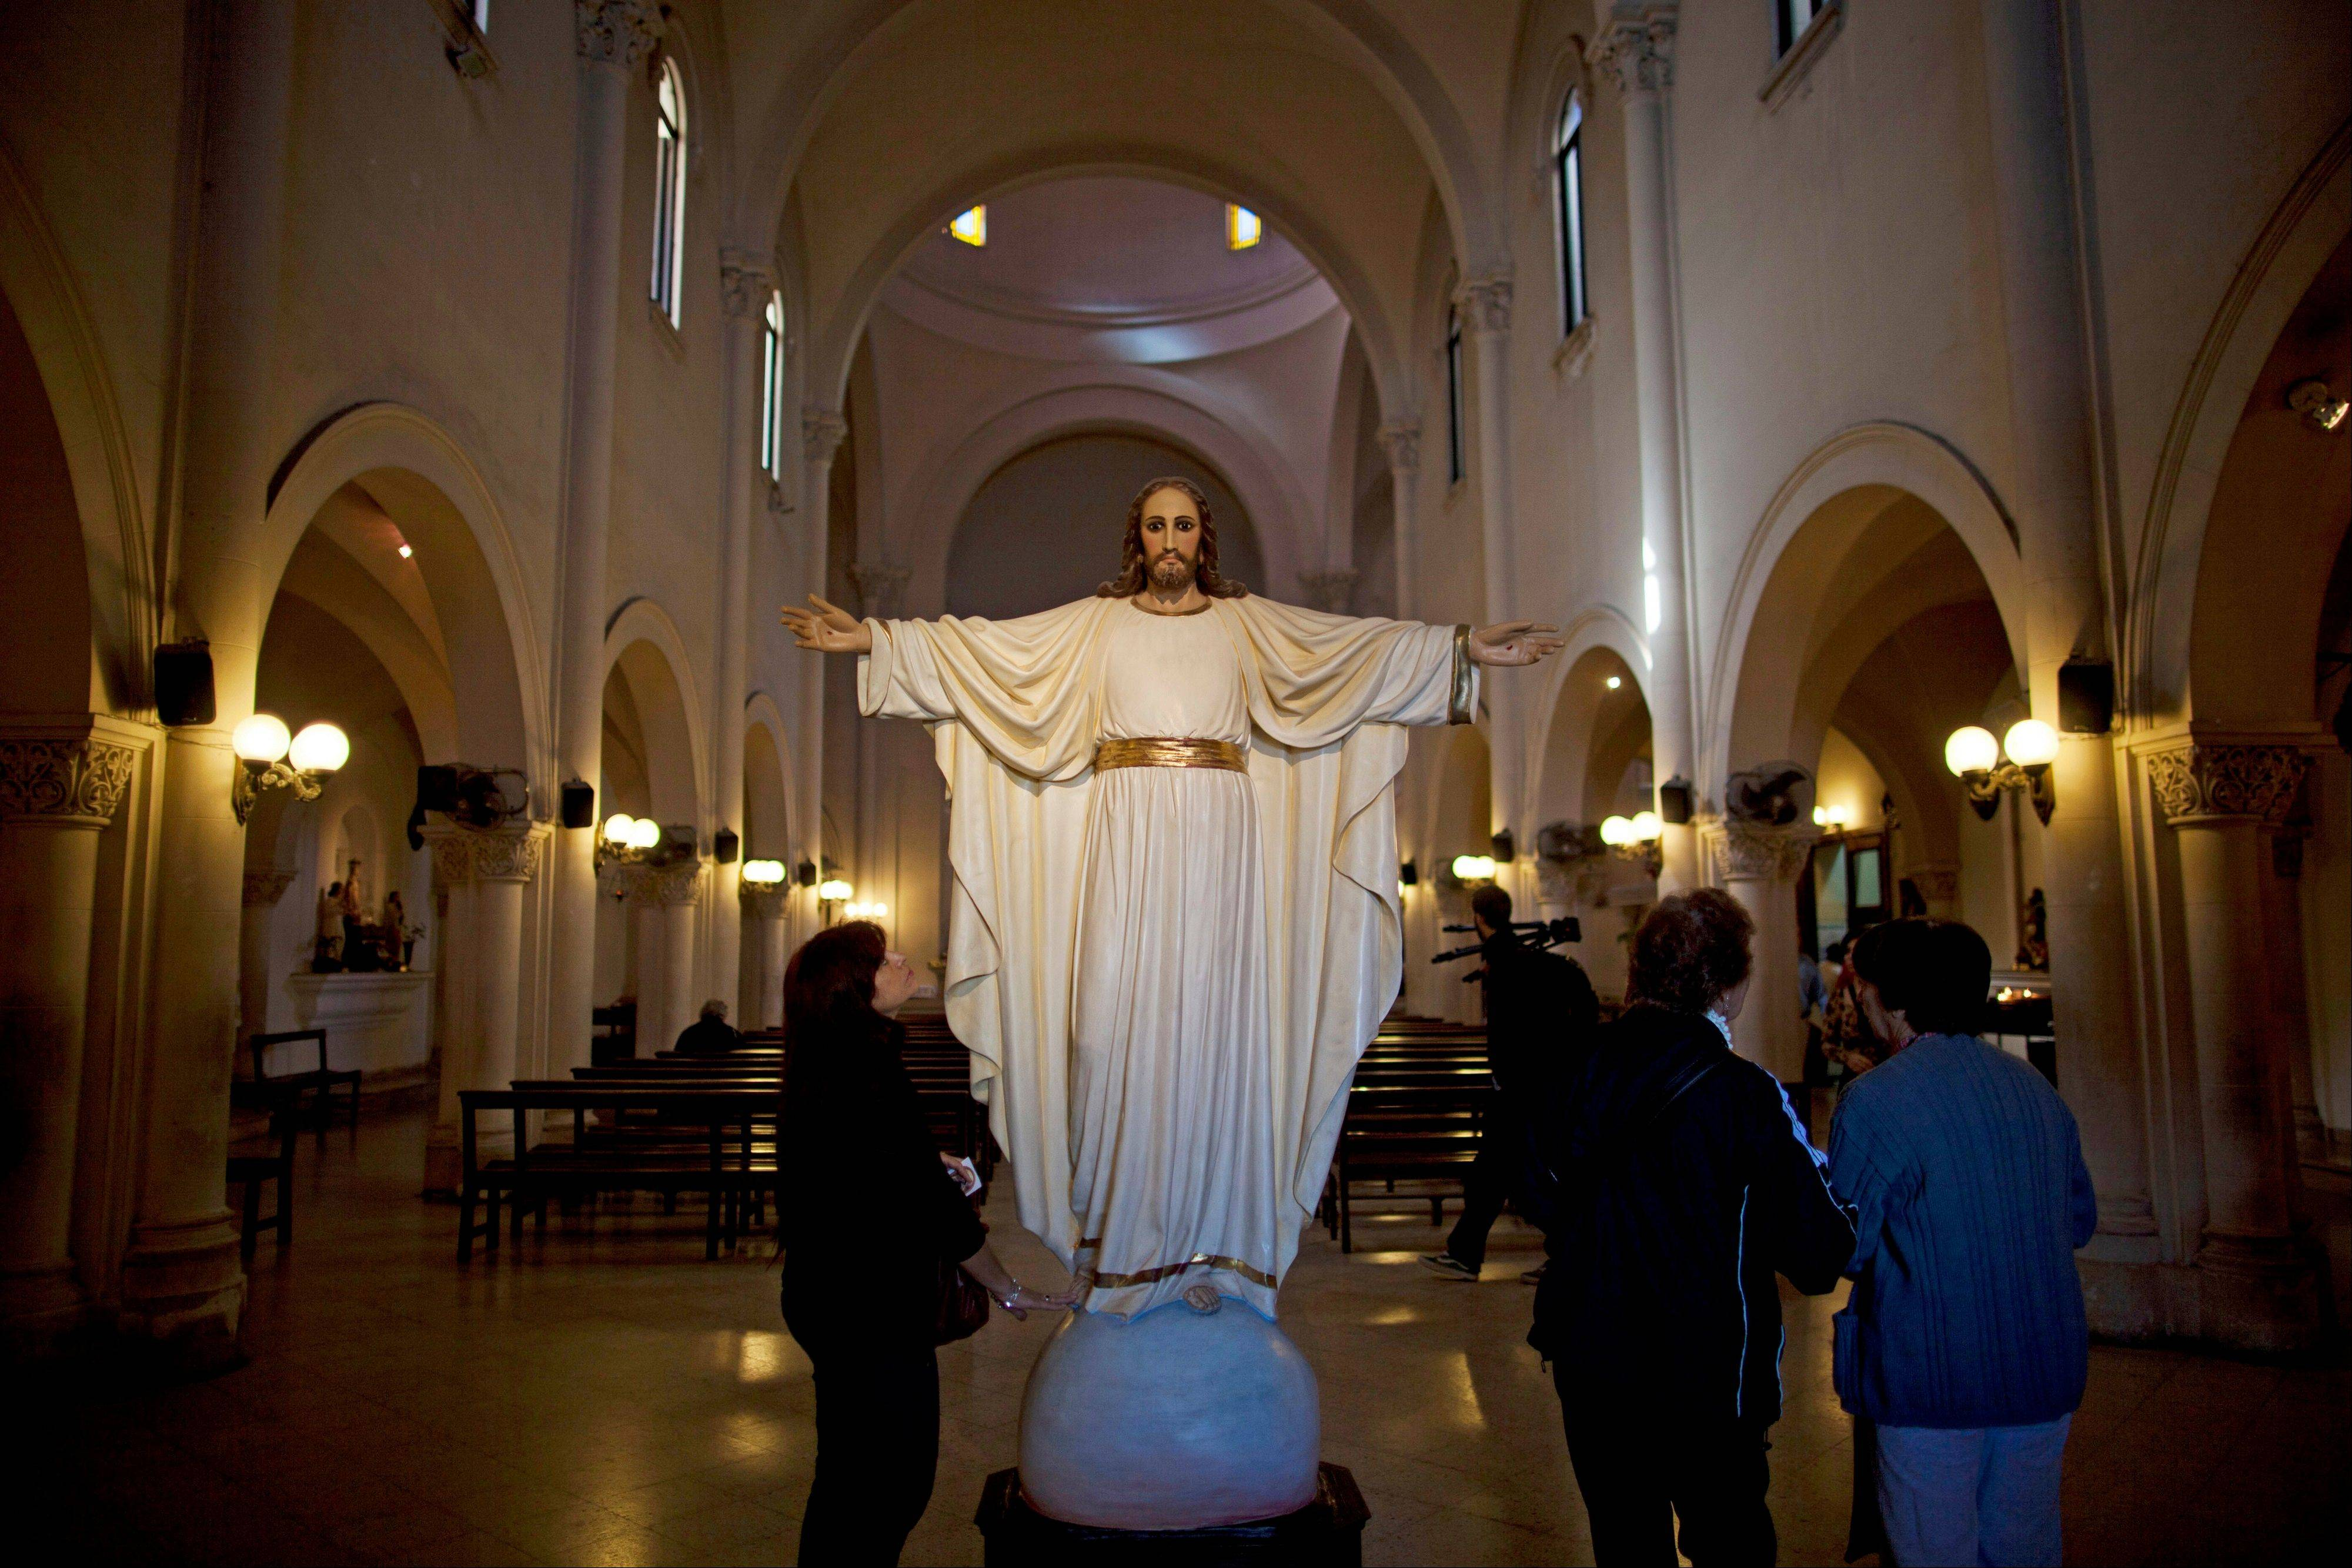 A woman looks up at a statue of Jesus Christ in the San Jose del Talar parish in Buenos Aires, Argentina. With an Argentine on the throne of St. Peter, the South American country's capital city has launched a series of guided tours.